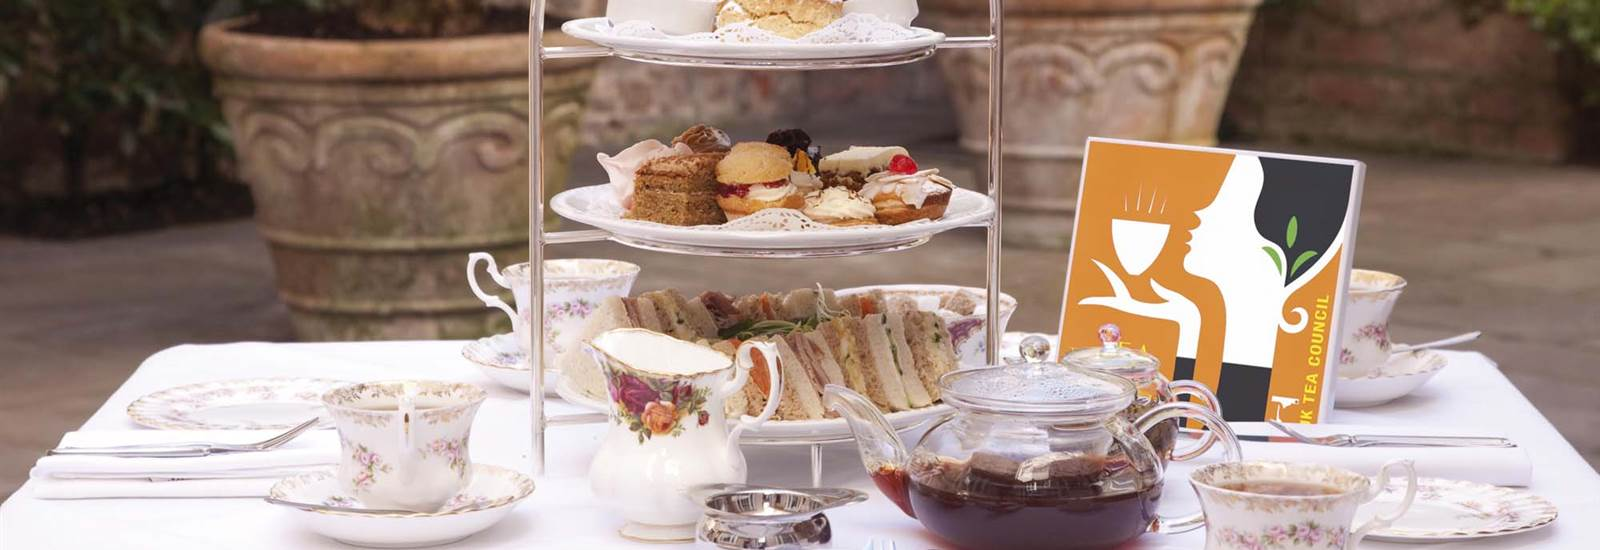 Afternoon tea in Abergavenny near Brecon Beacons at The Angel Hotel 3 Star in South Wales